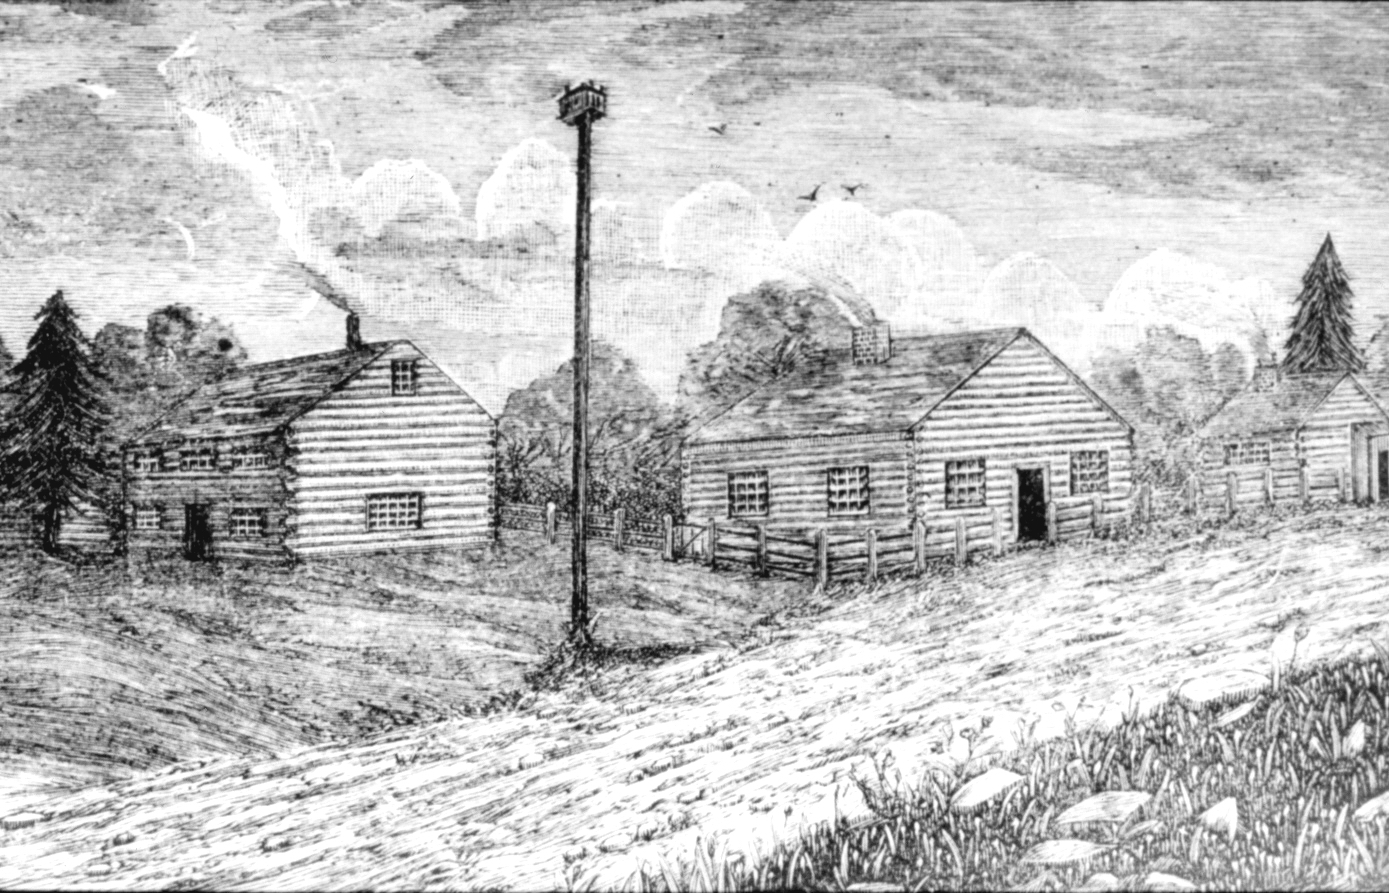 Sketch of the Credit River Methodist Mission by Eliza Field Jones 1833